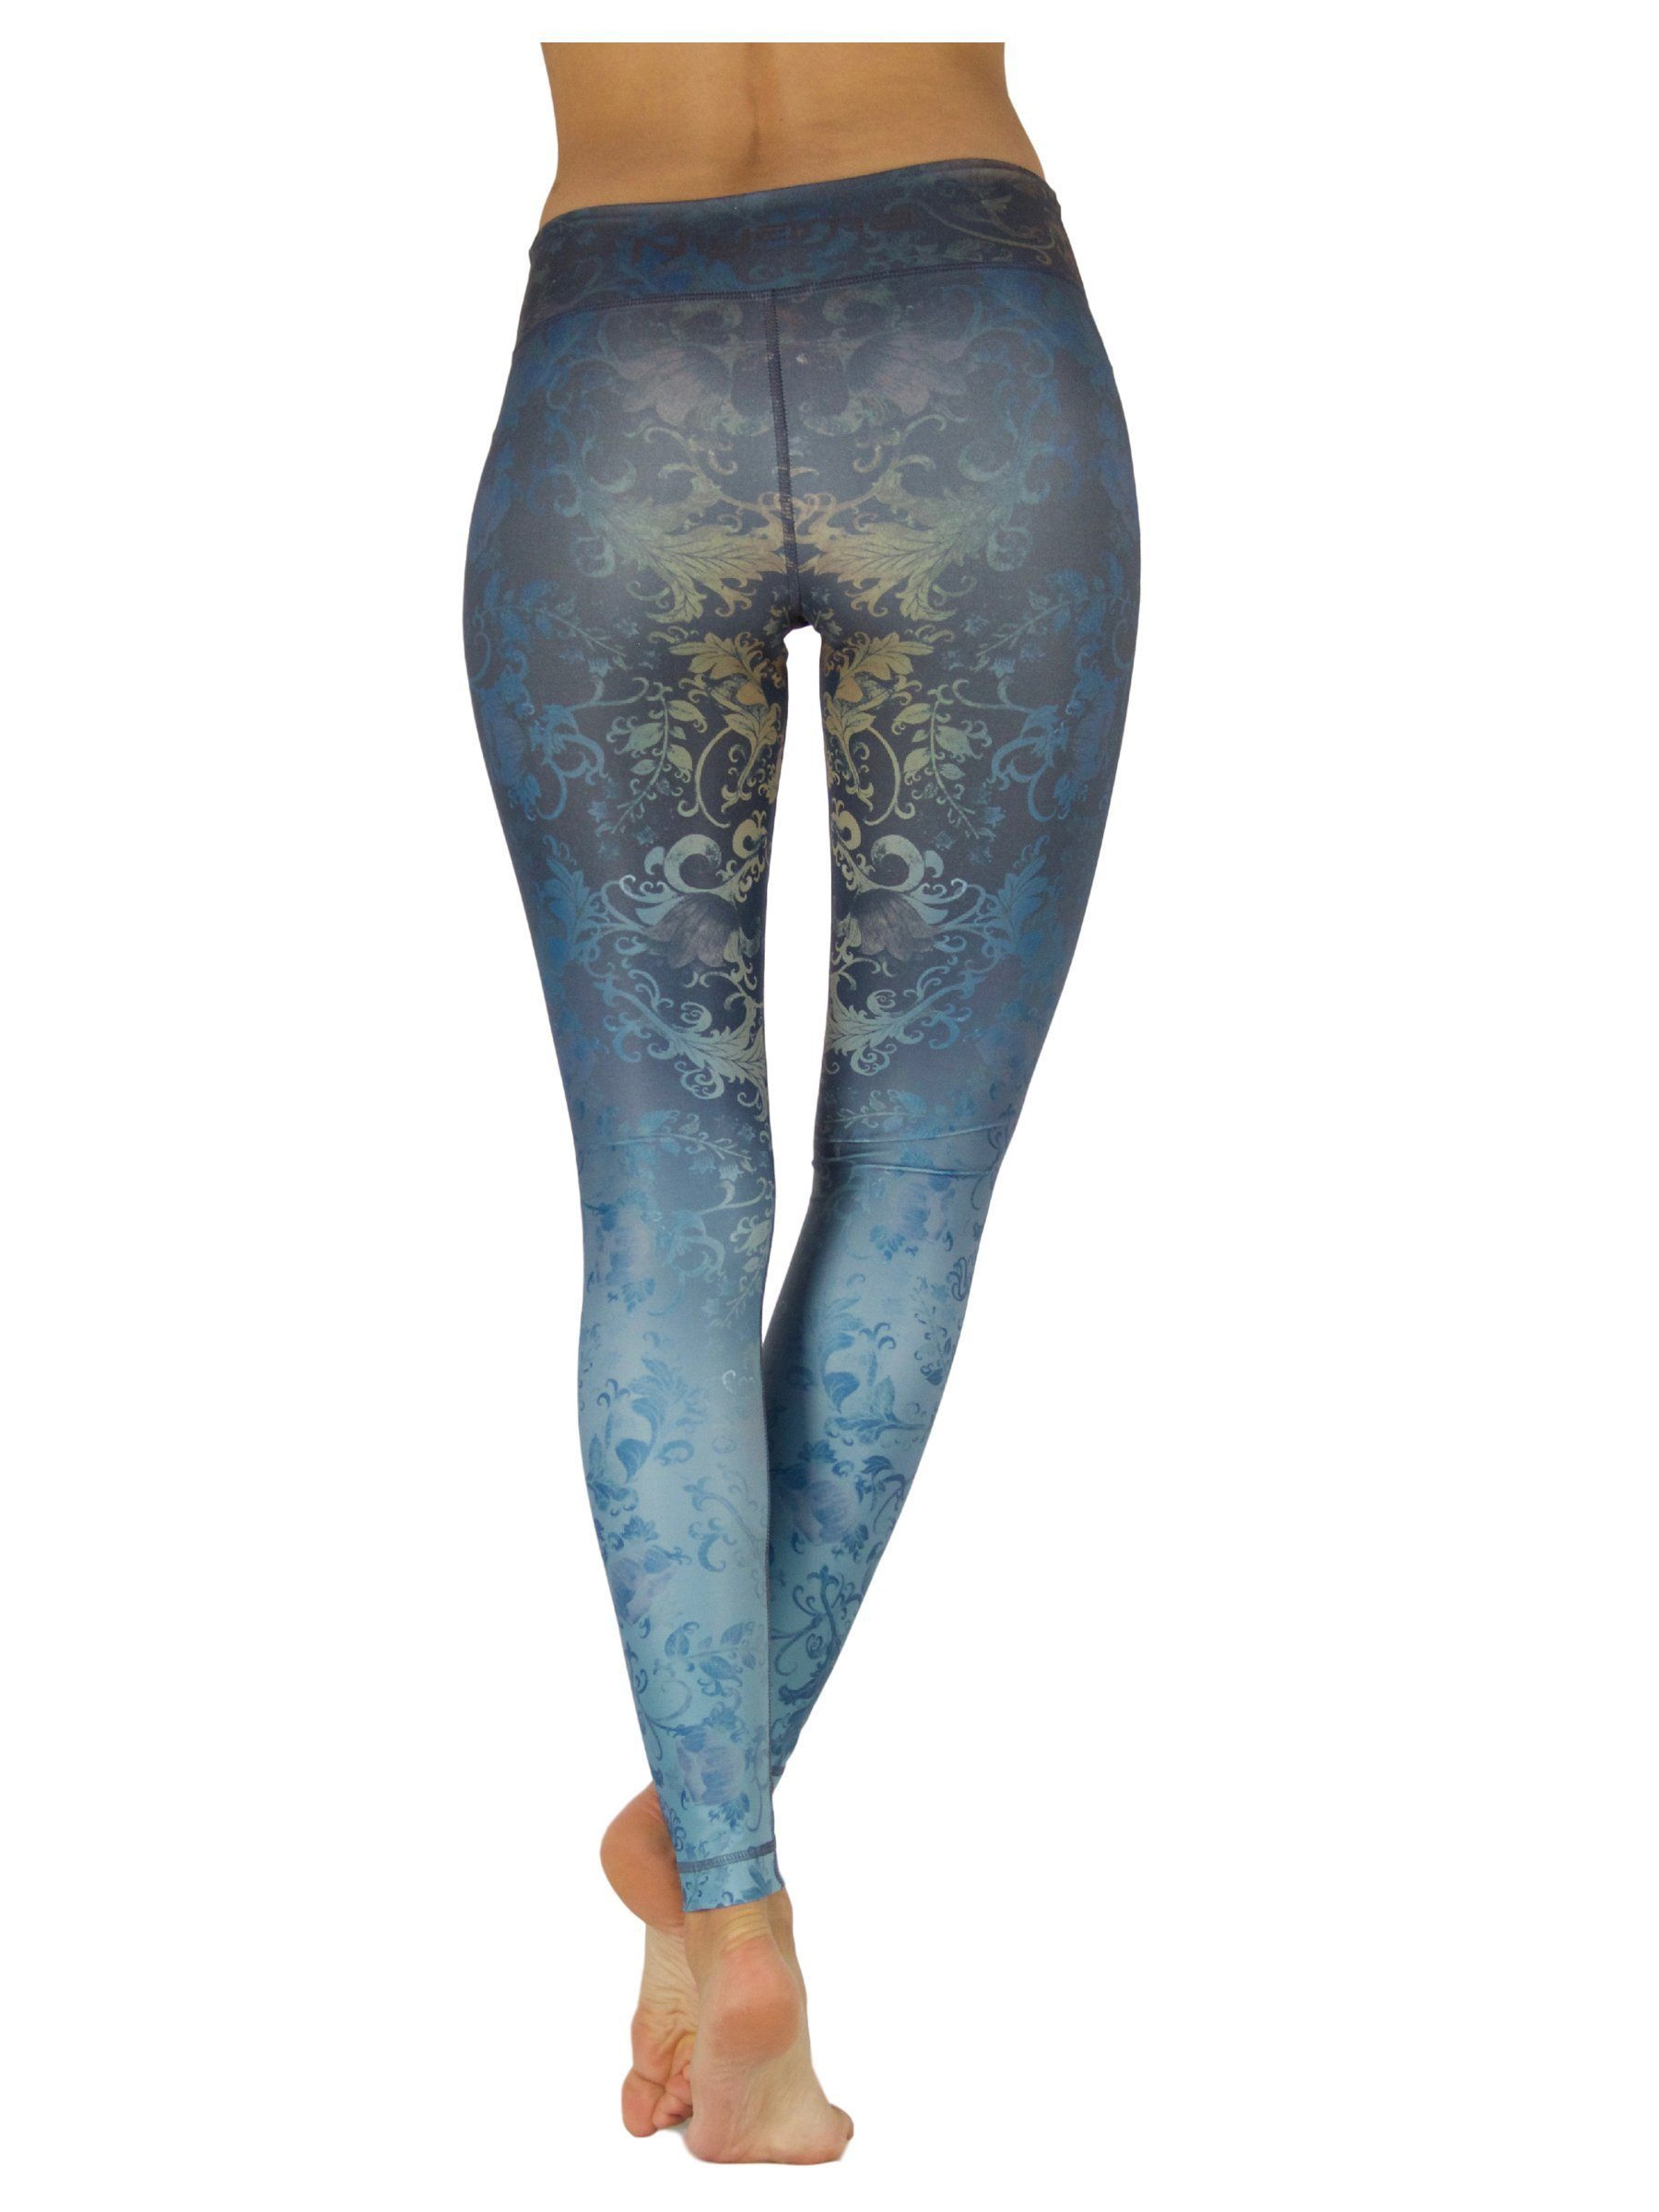 Shining Goddess by Niyama - High Quality, , Yoga Legging for Movement Artists.